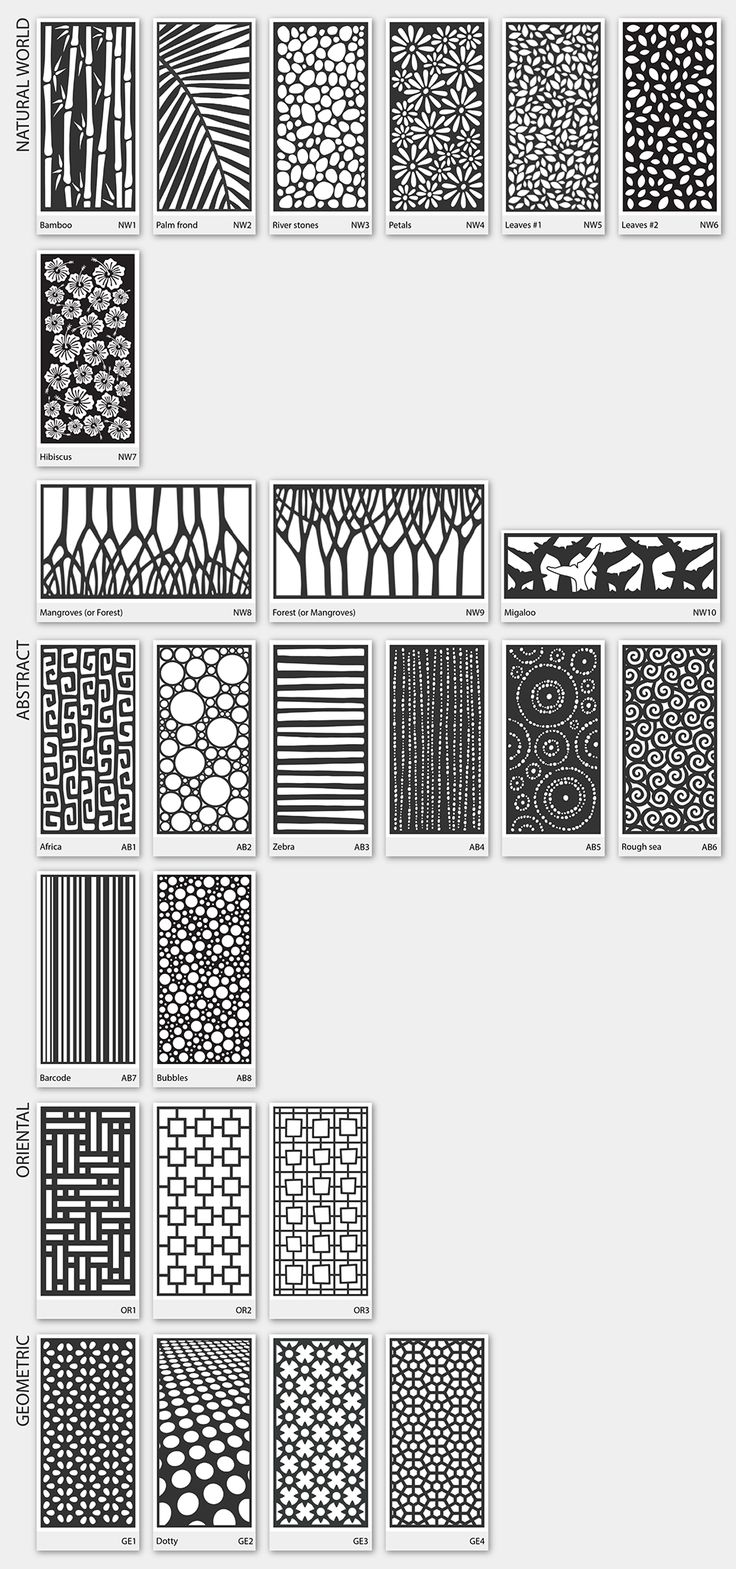 Some patterns LASER-CUT METAL SCREENS